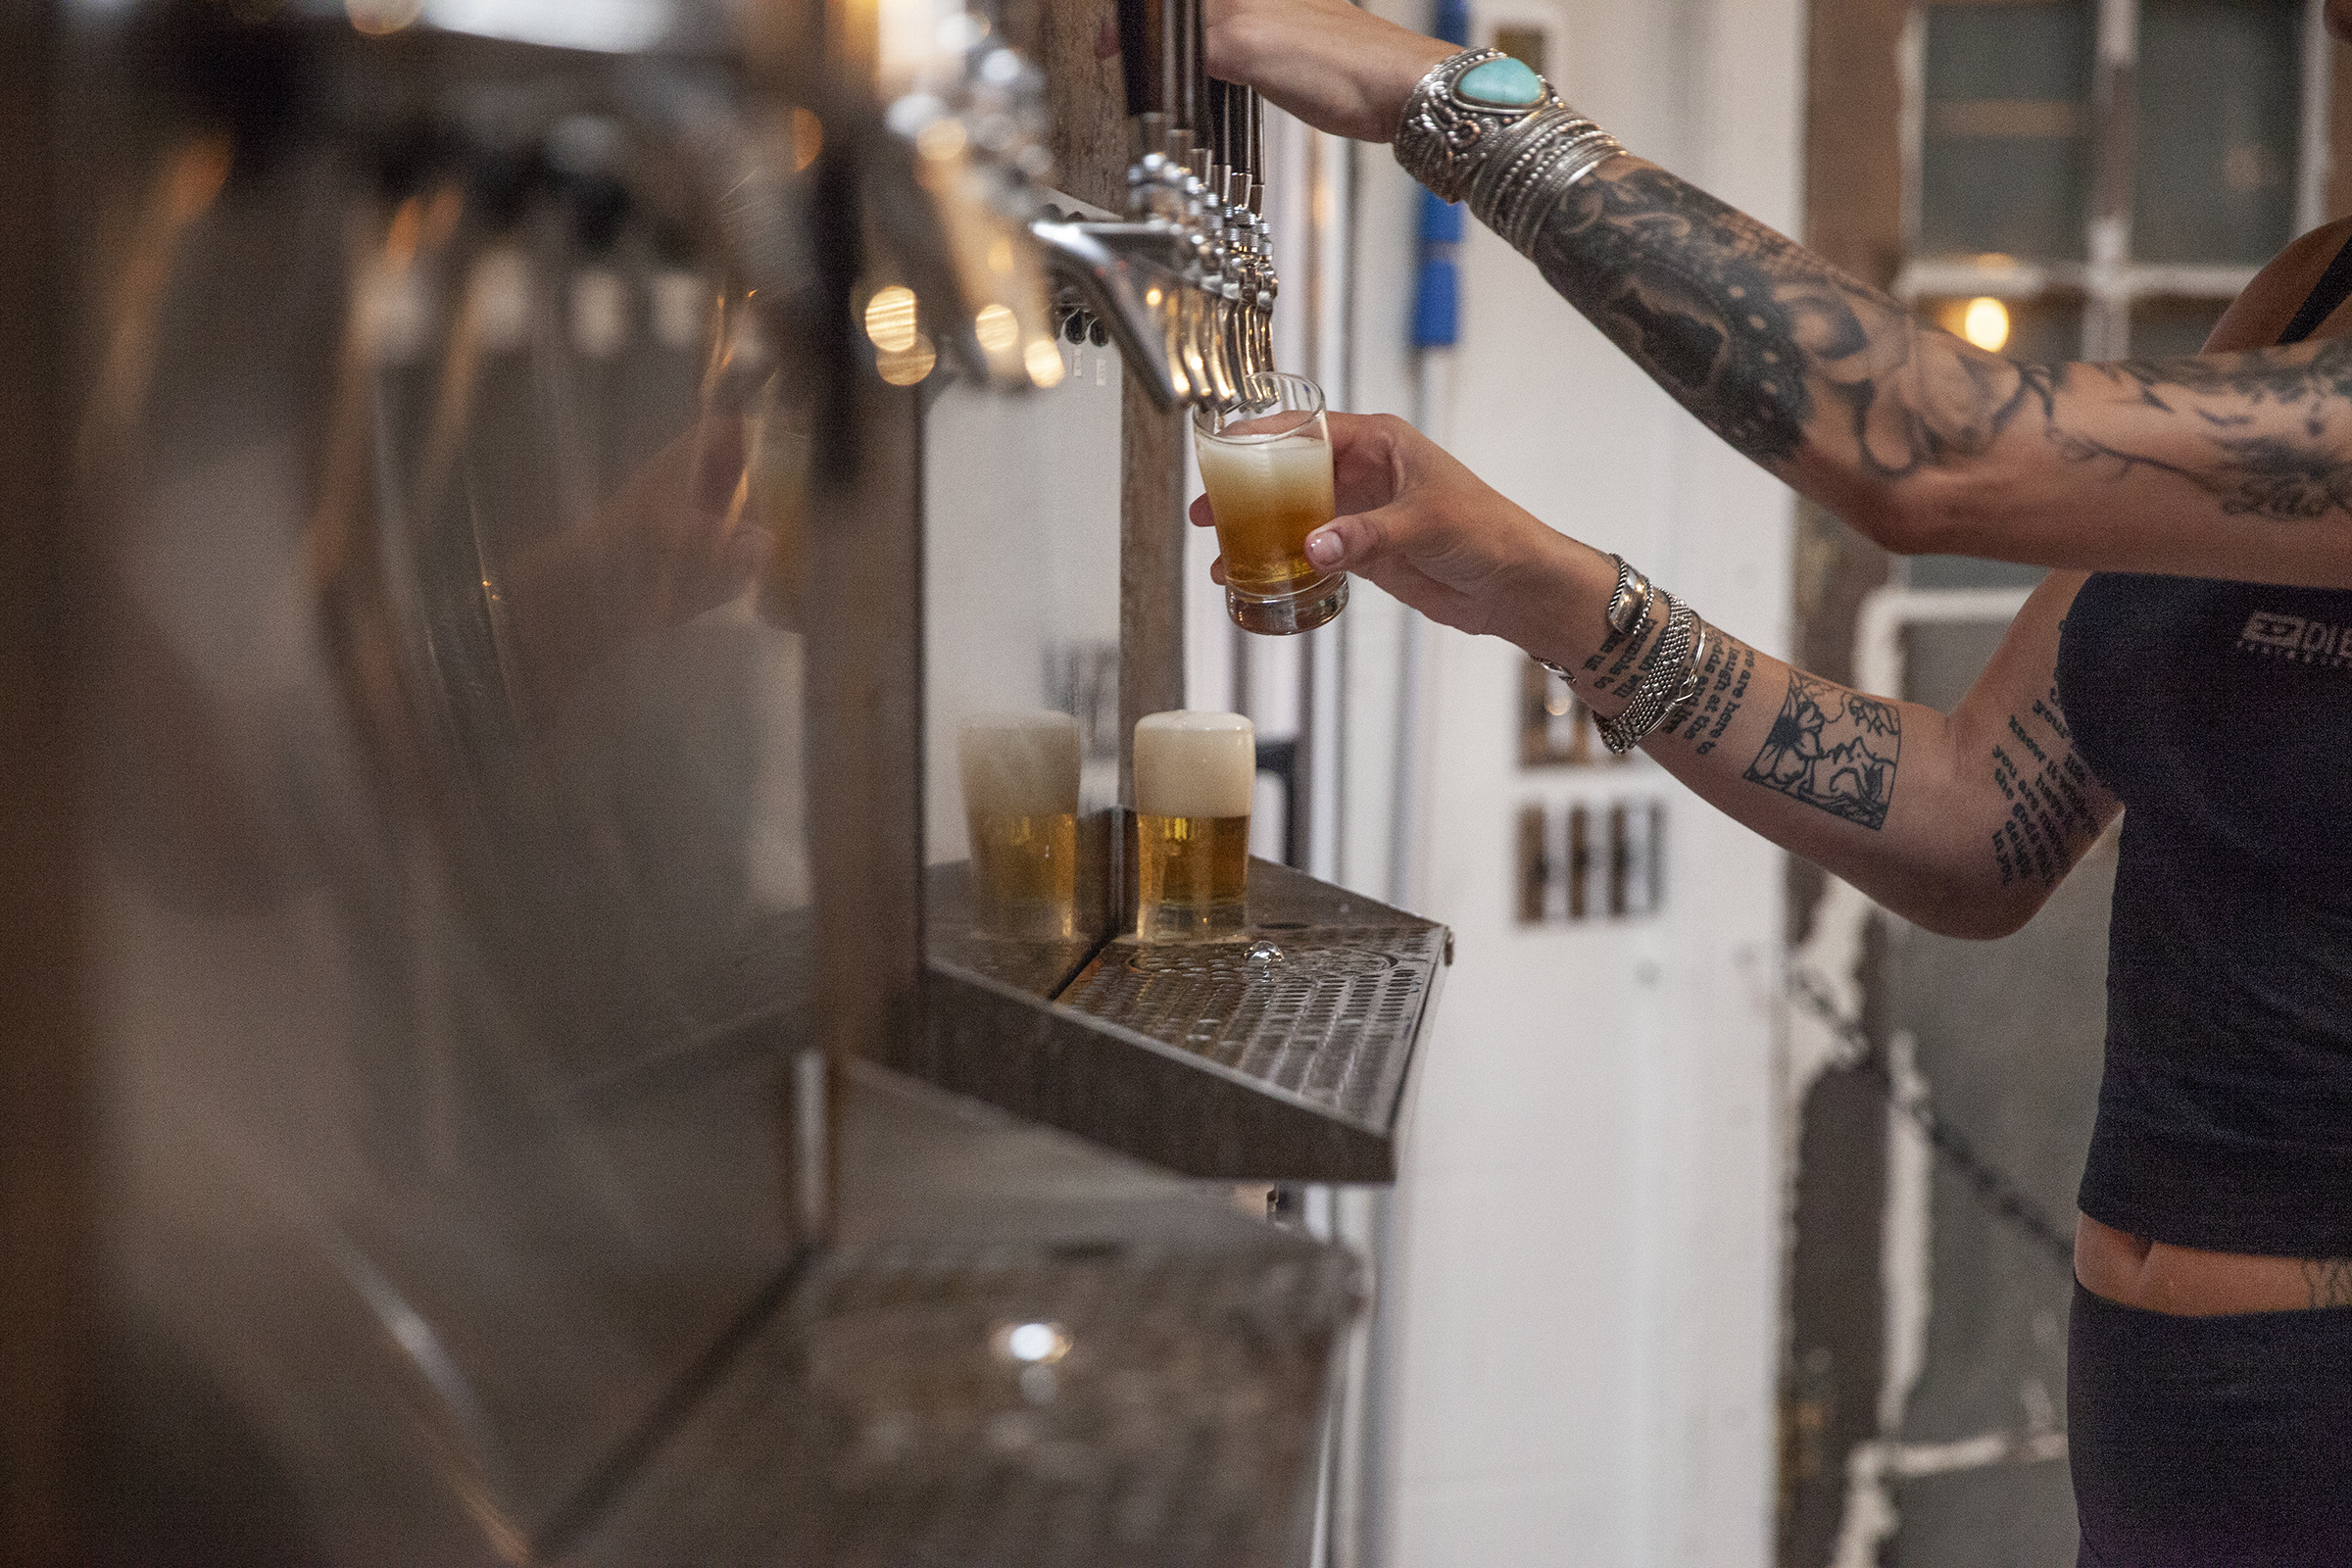 Bartenders fill up drinks at Love City Brewing, located at 1023 Hamilton, on Friday evening, Sept. 21, 2018.